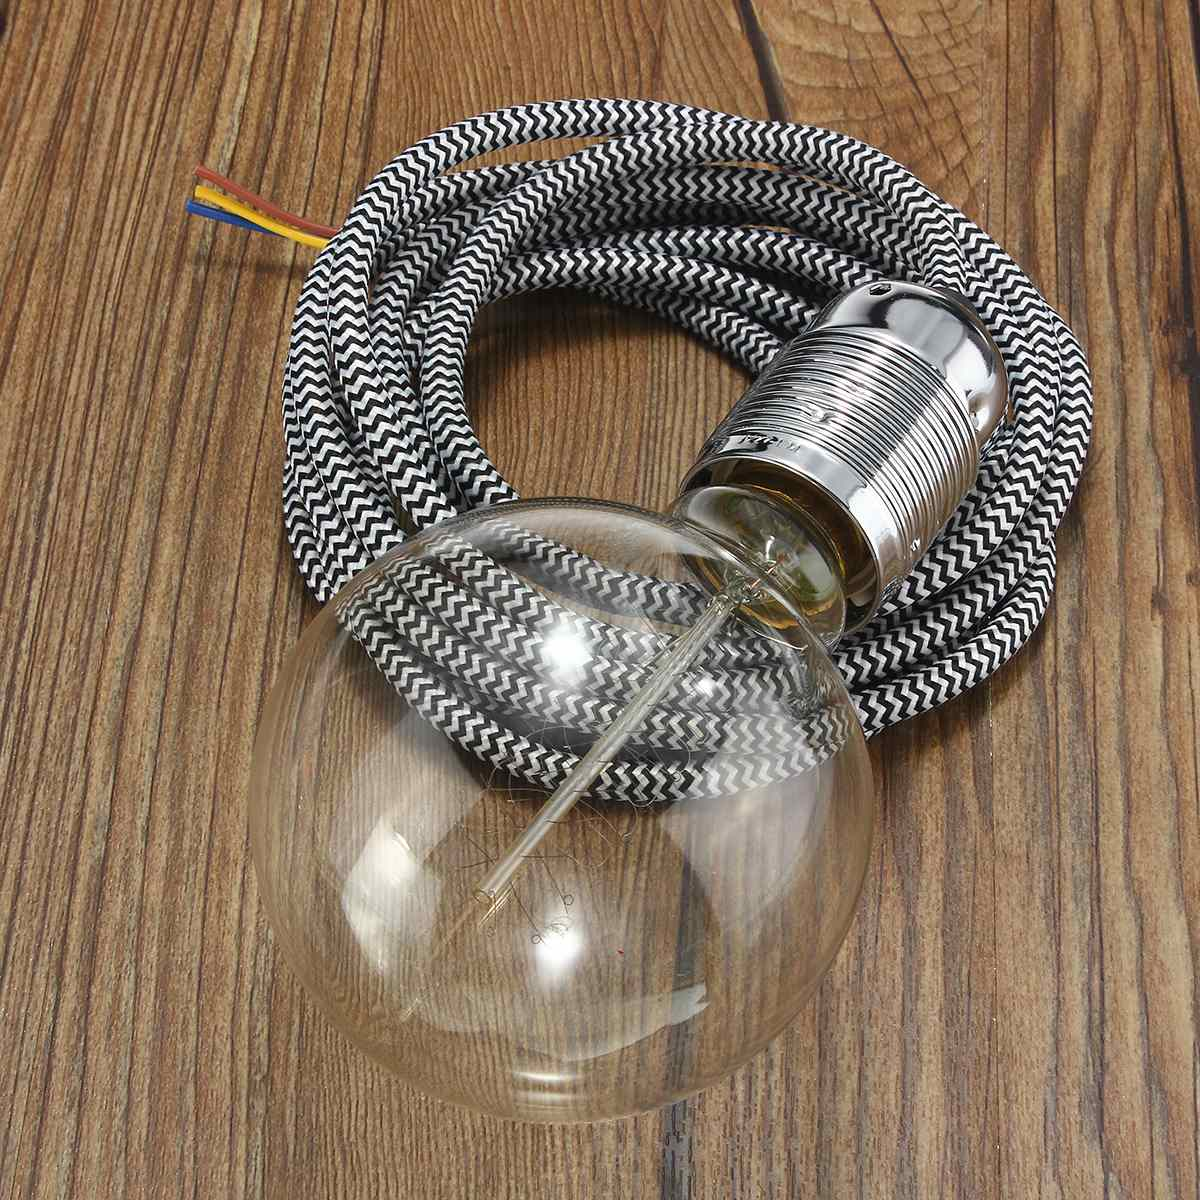 3 Meter E27 3 Core Wire Vintage Edison Lampholder Fabric Flexible Cable Pendant Lamp Light Bulb Holder Socket(China (Mainland))